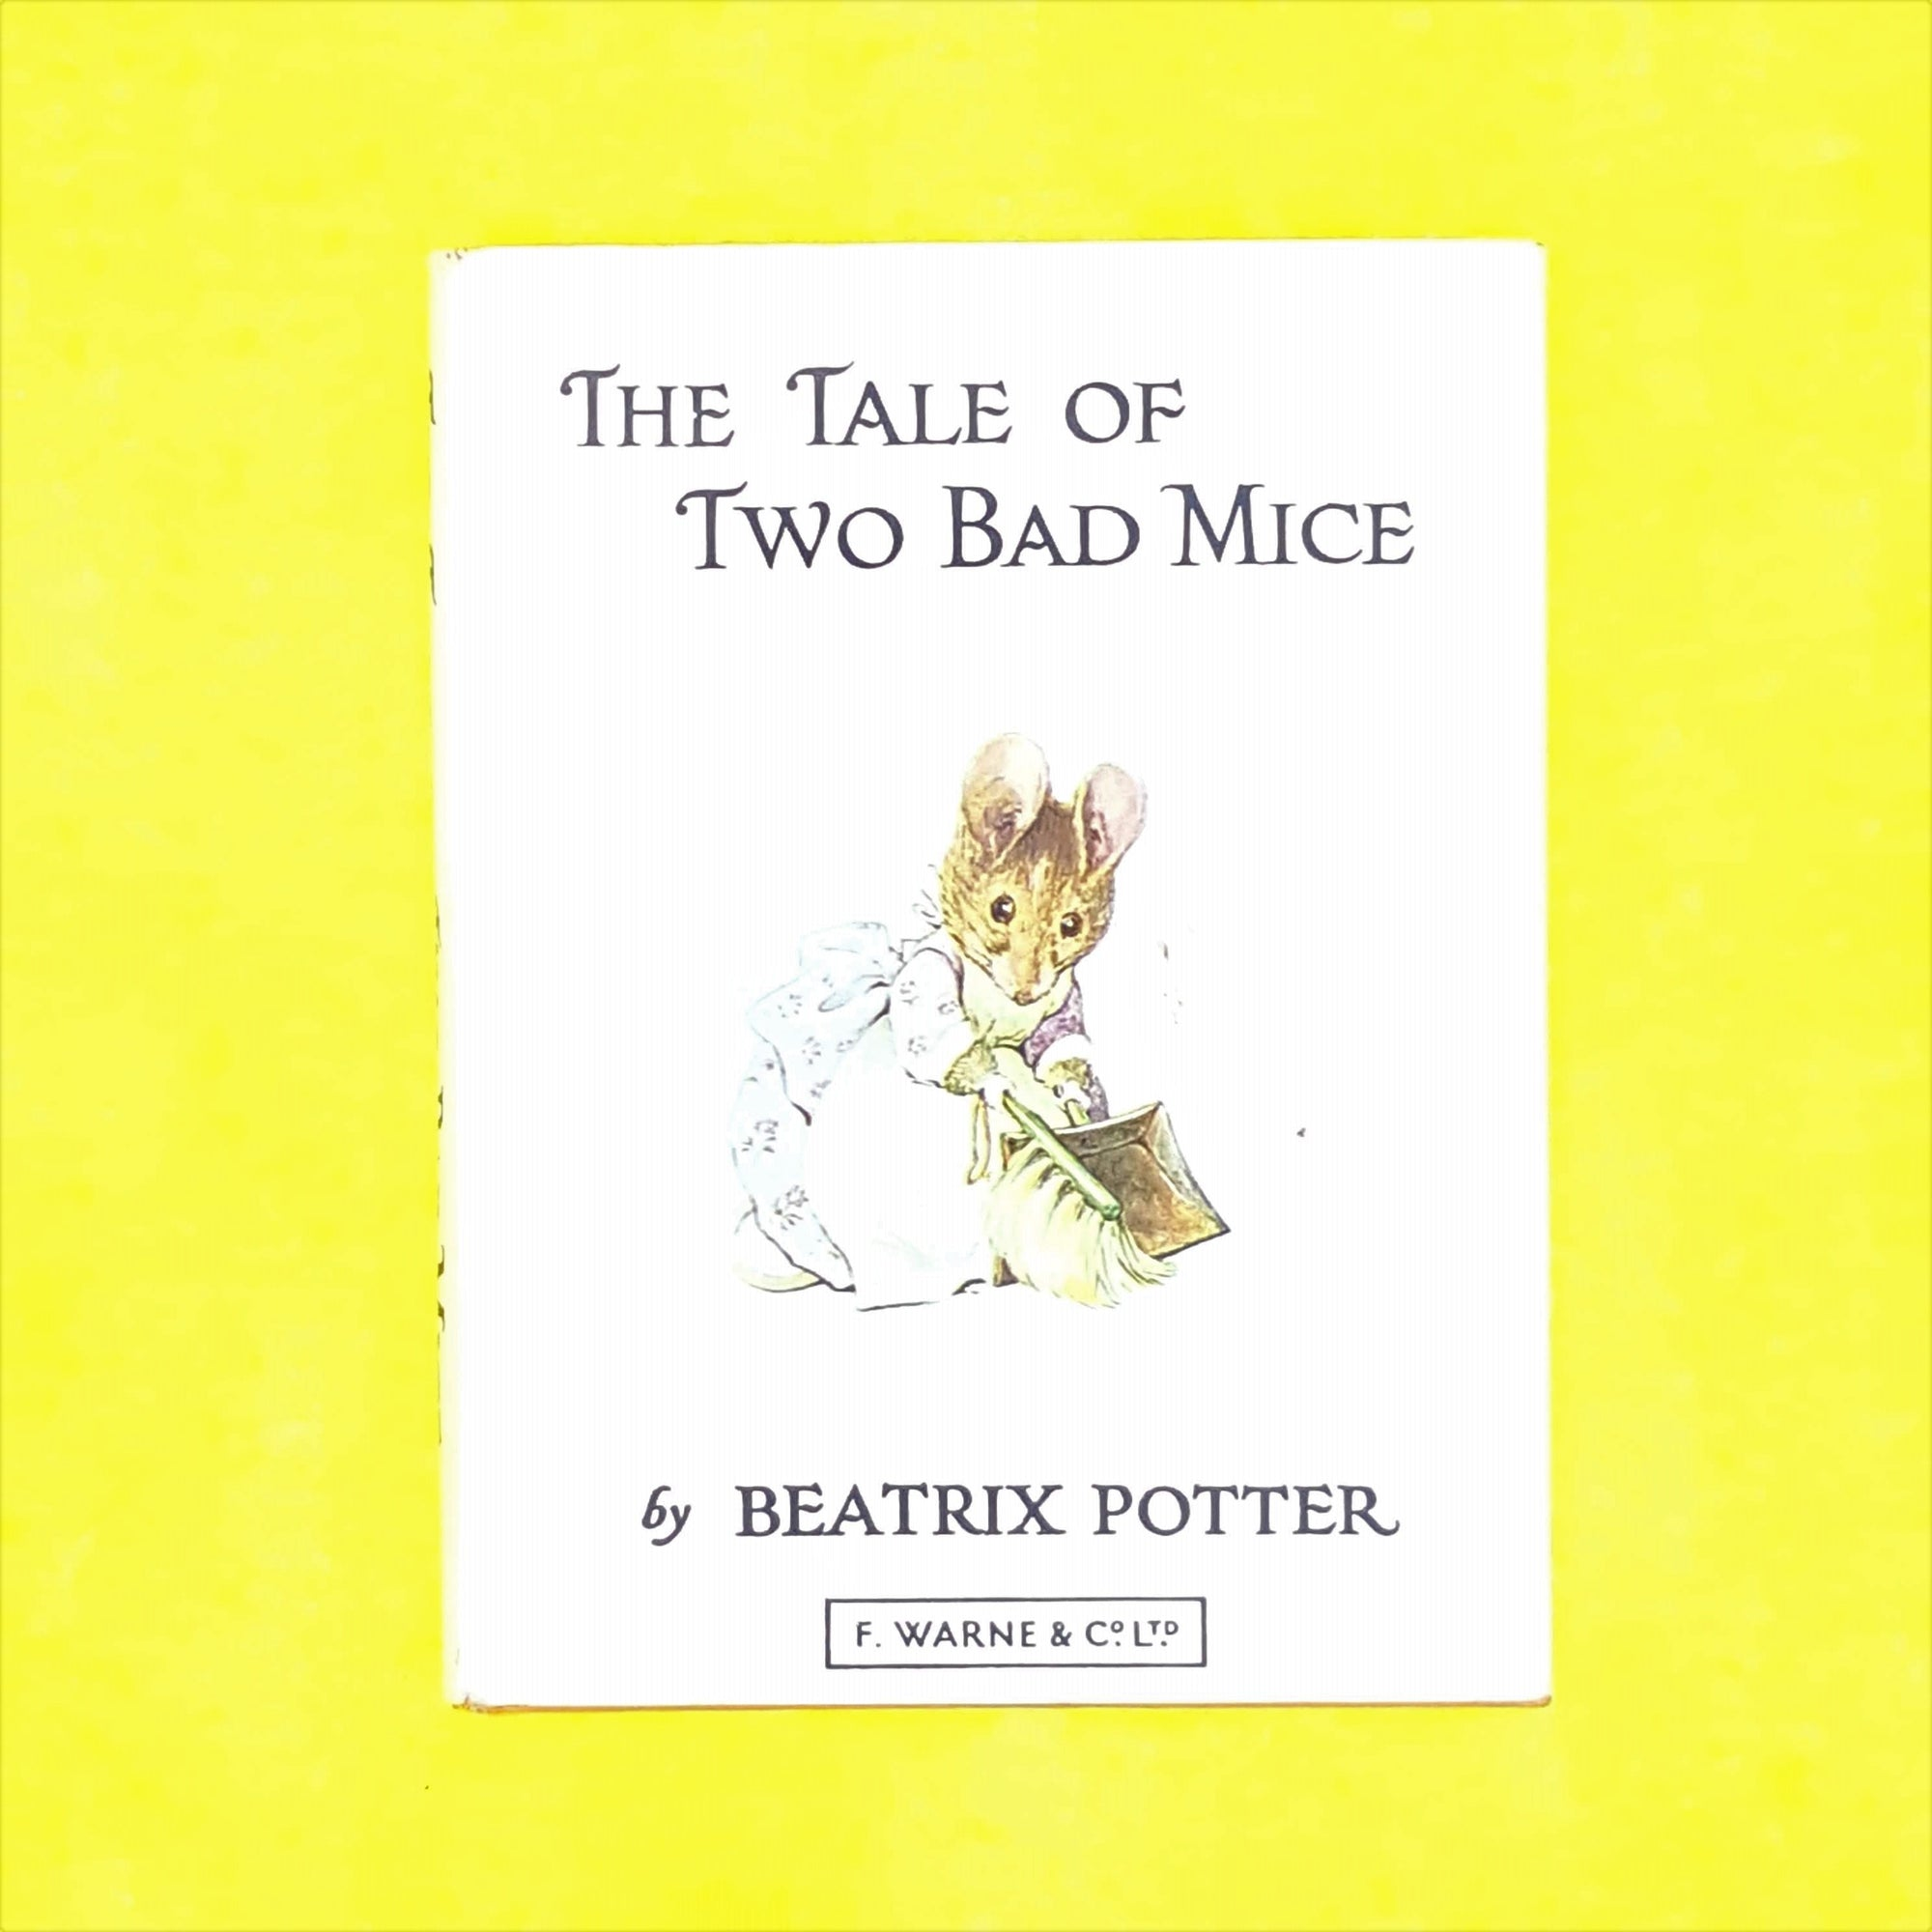 childrens-antique-patterned-two-bad-mice-old-books-orange-classic-decorative-beatrix-potter-country-house-library-vintage-thrift-